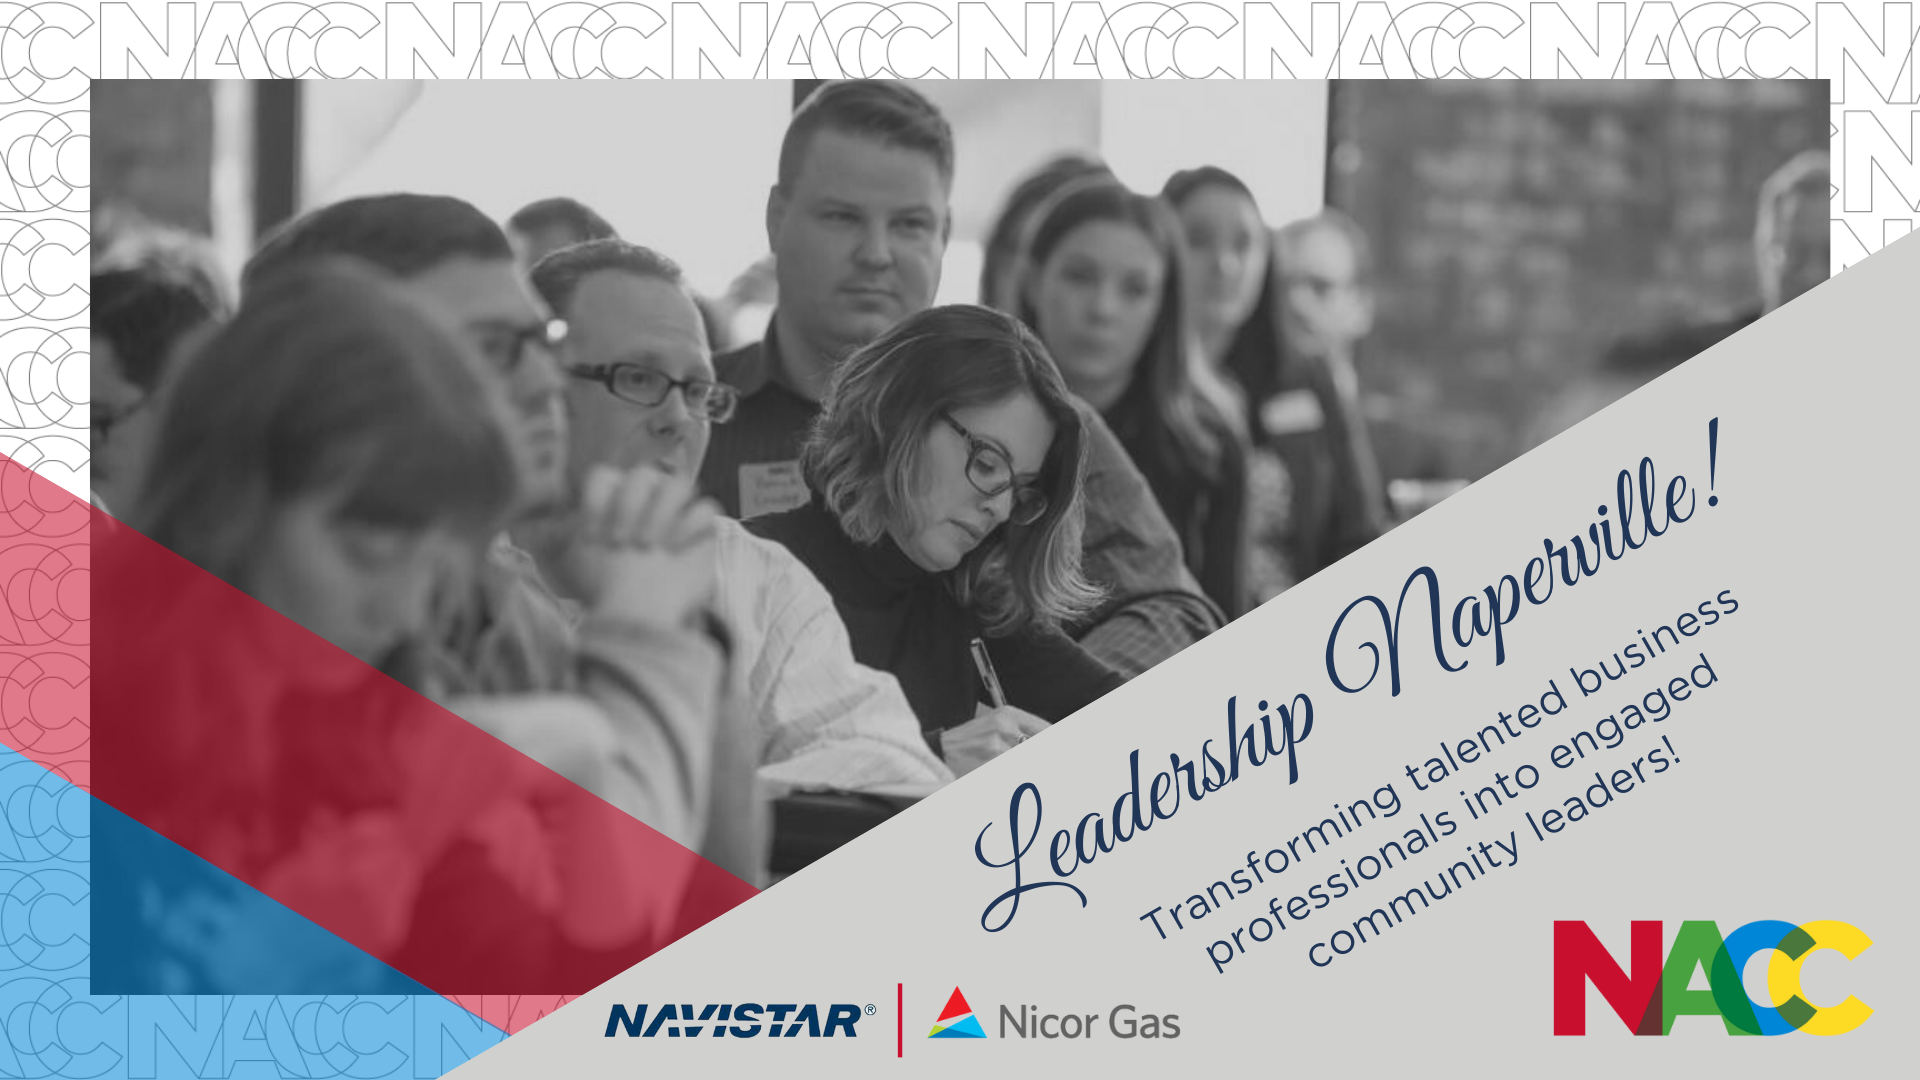 Leadership Naperville presented by the Naperville Area Chamber of Commerce